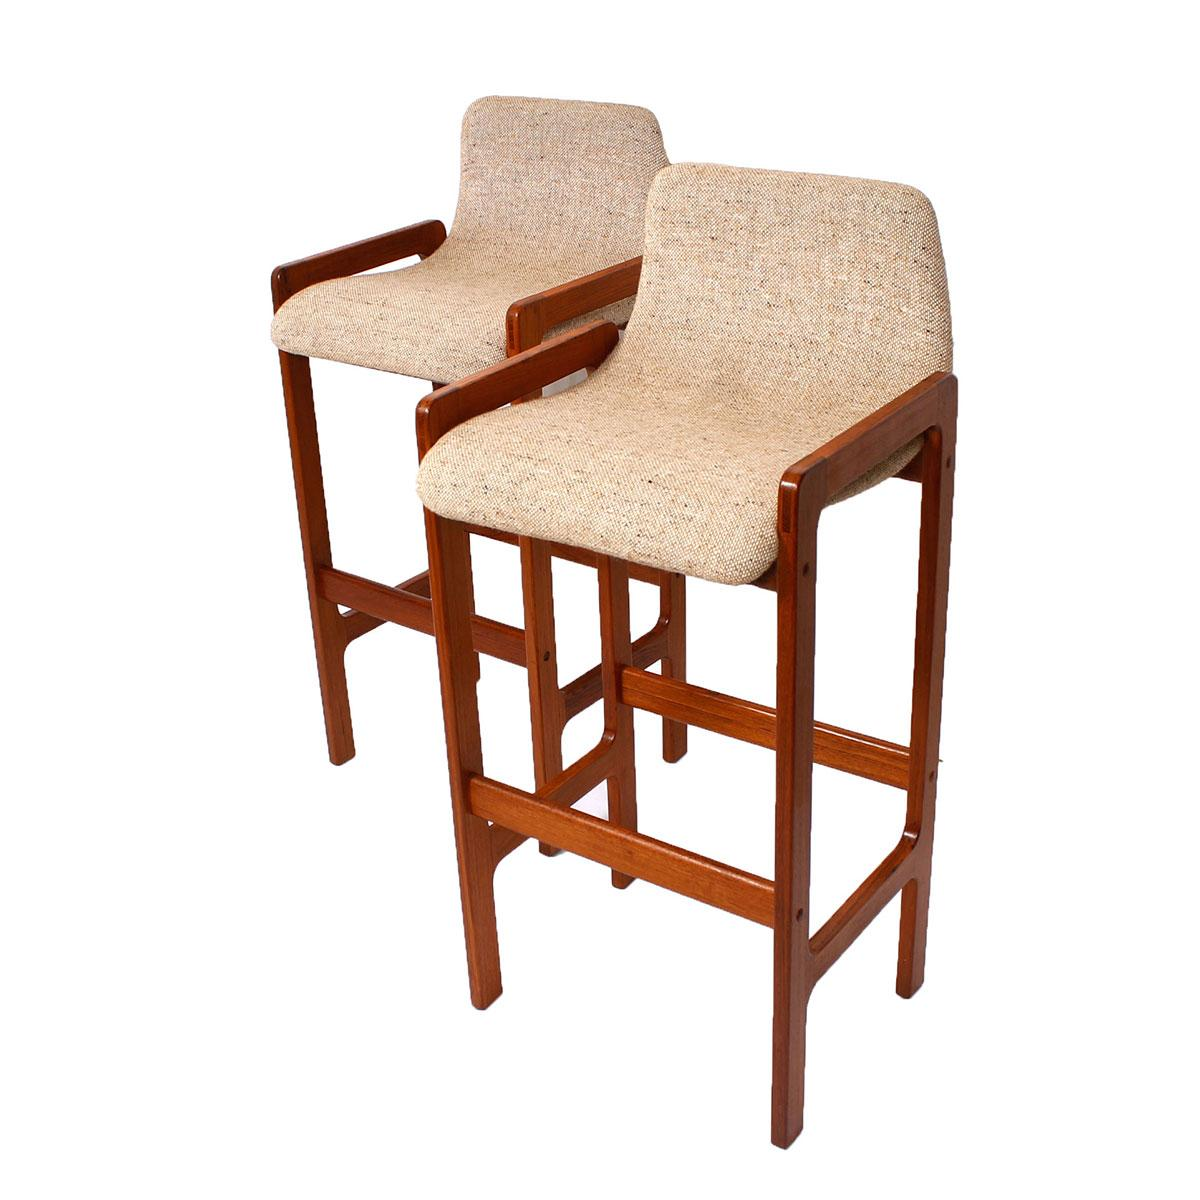 Danish Modern Teak Bar Stools A Pair Chairish